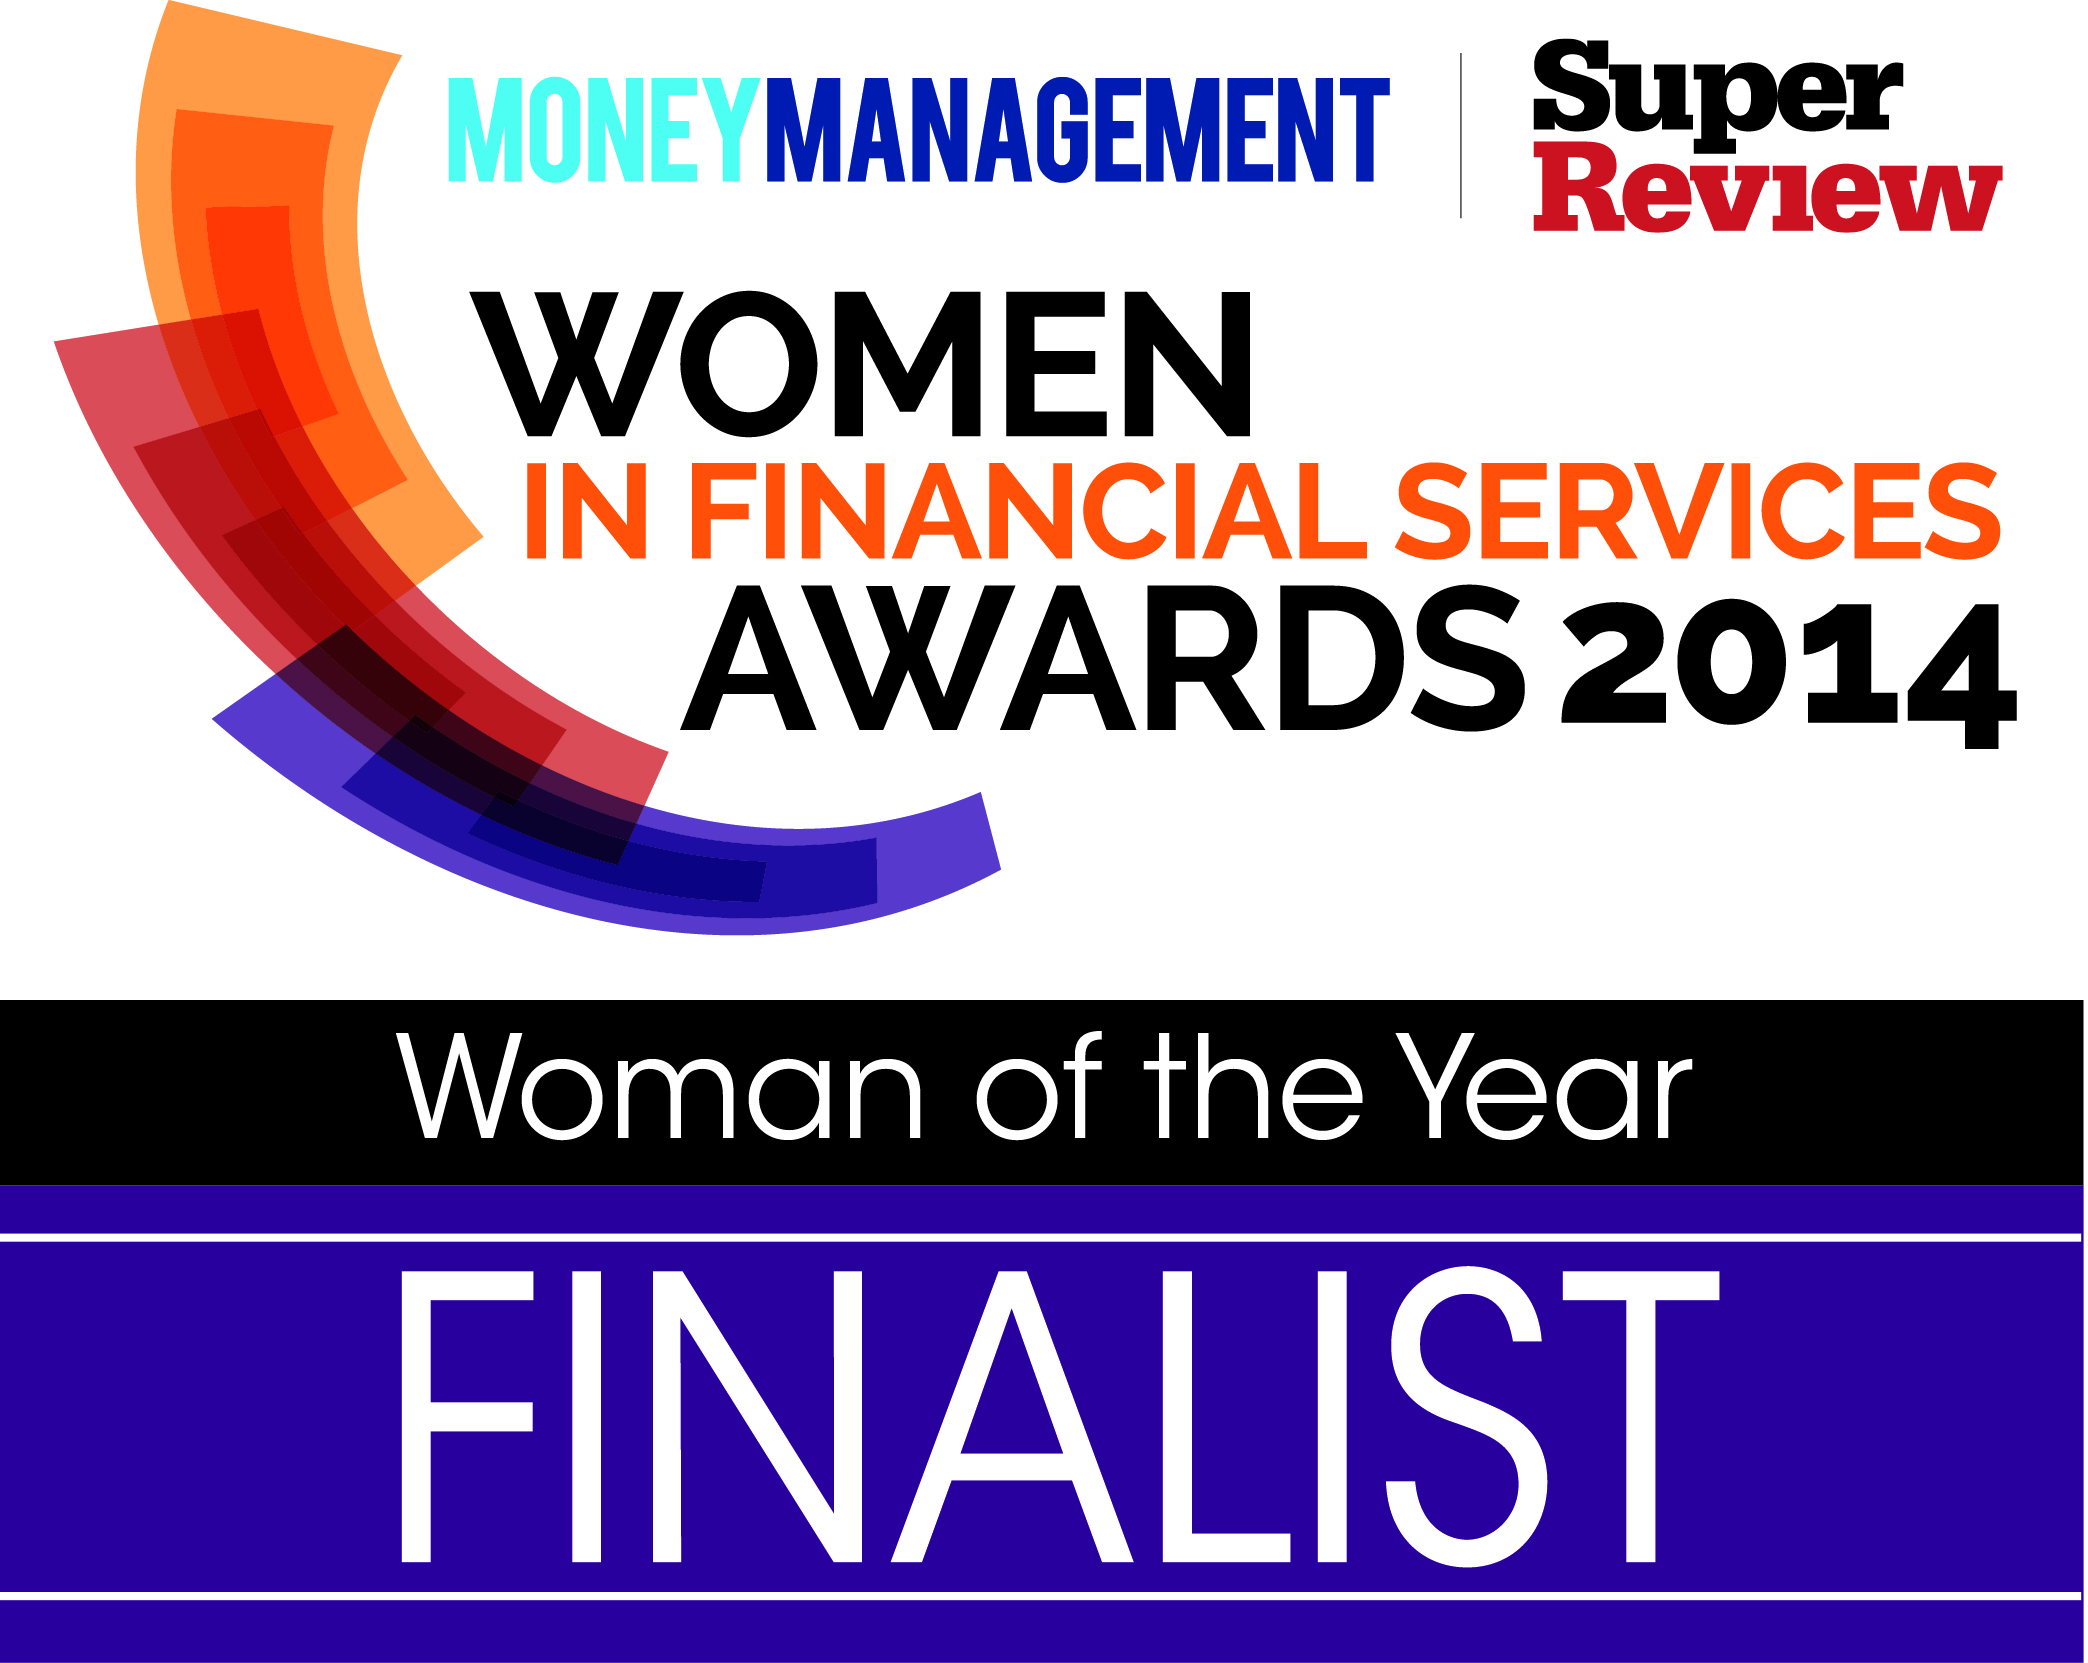 Woman_in_Financial_Services_Woman_of_the_Year_Finalist_Michelle_Tate-Lovery_2014.jpg